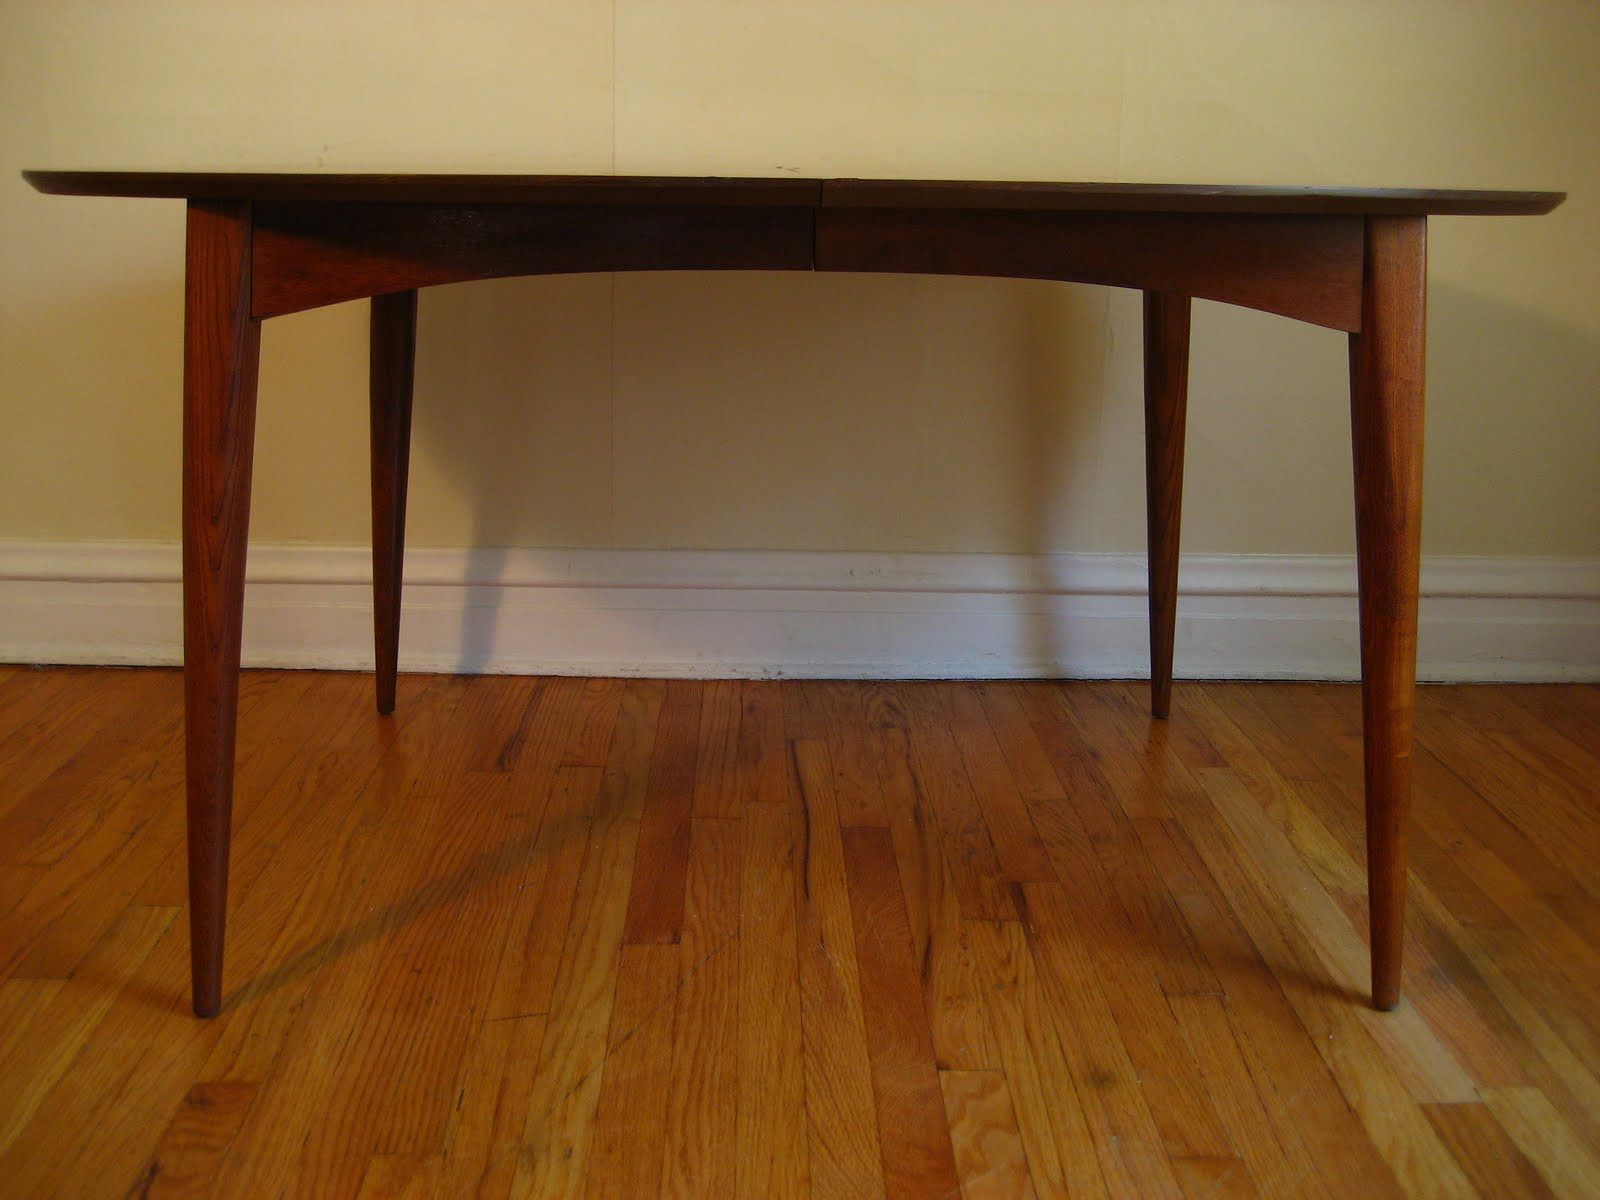 Best ideas about Mid Century Modern Dining Table . Save or Pin flatout design Mid Century Modern Dining Table Now.